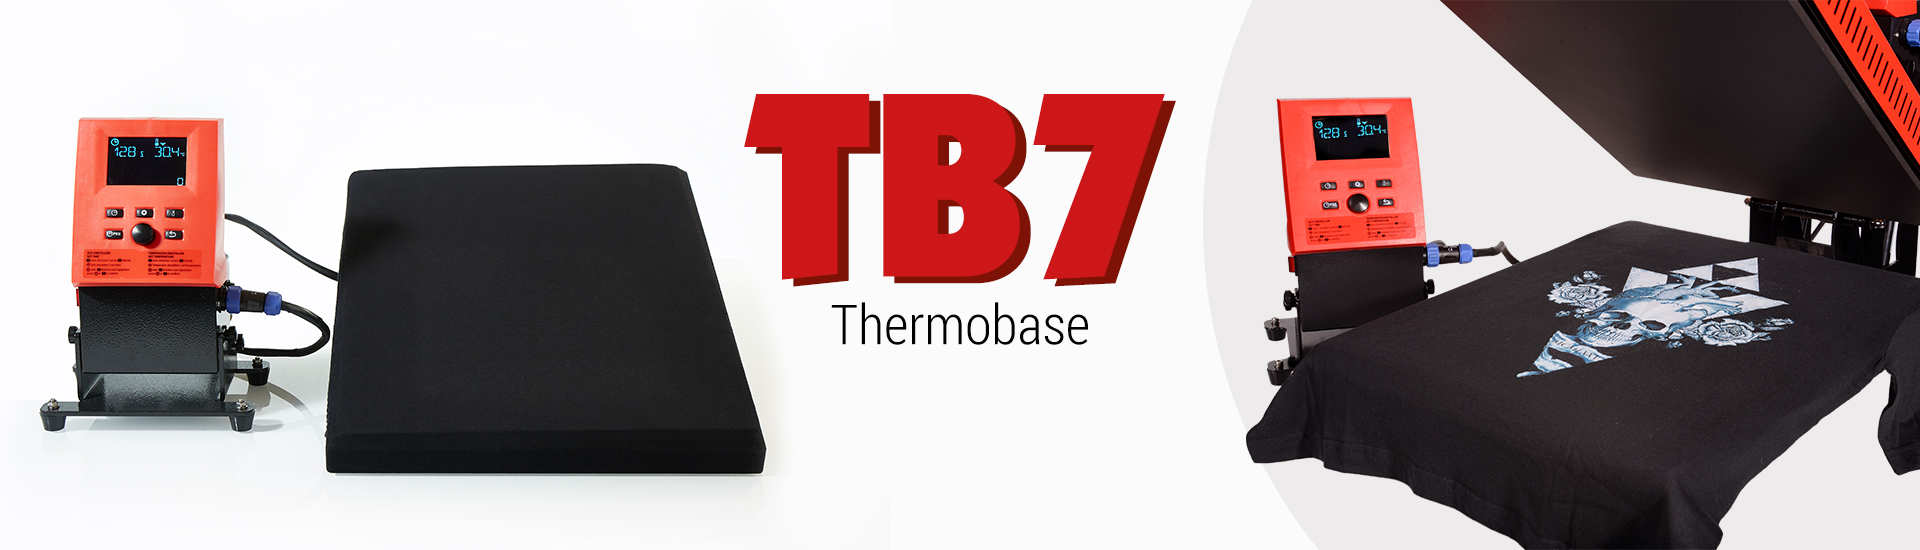 Secabo Thermobase TB7 40cm x 50cm